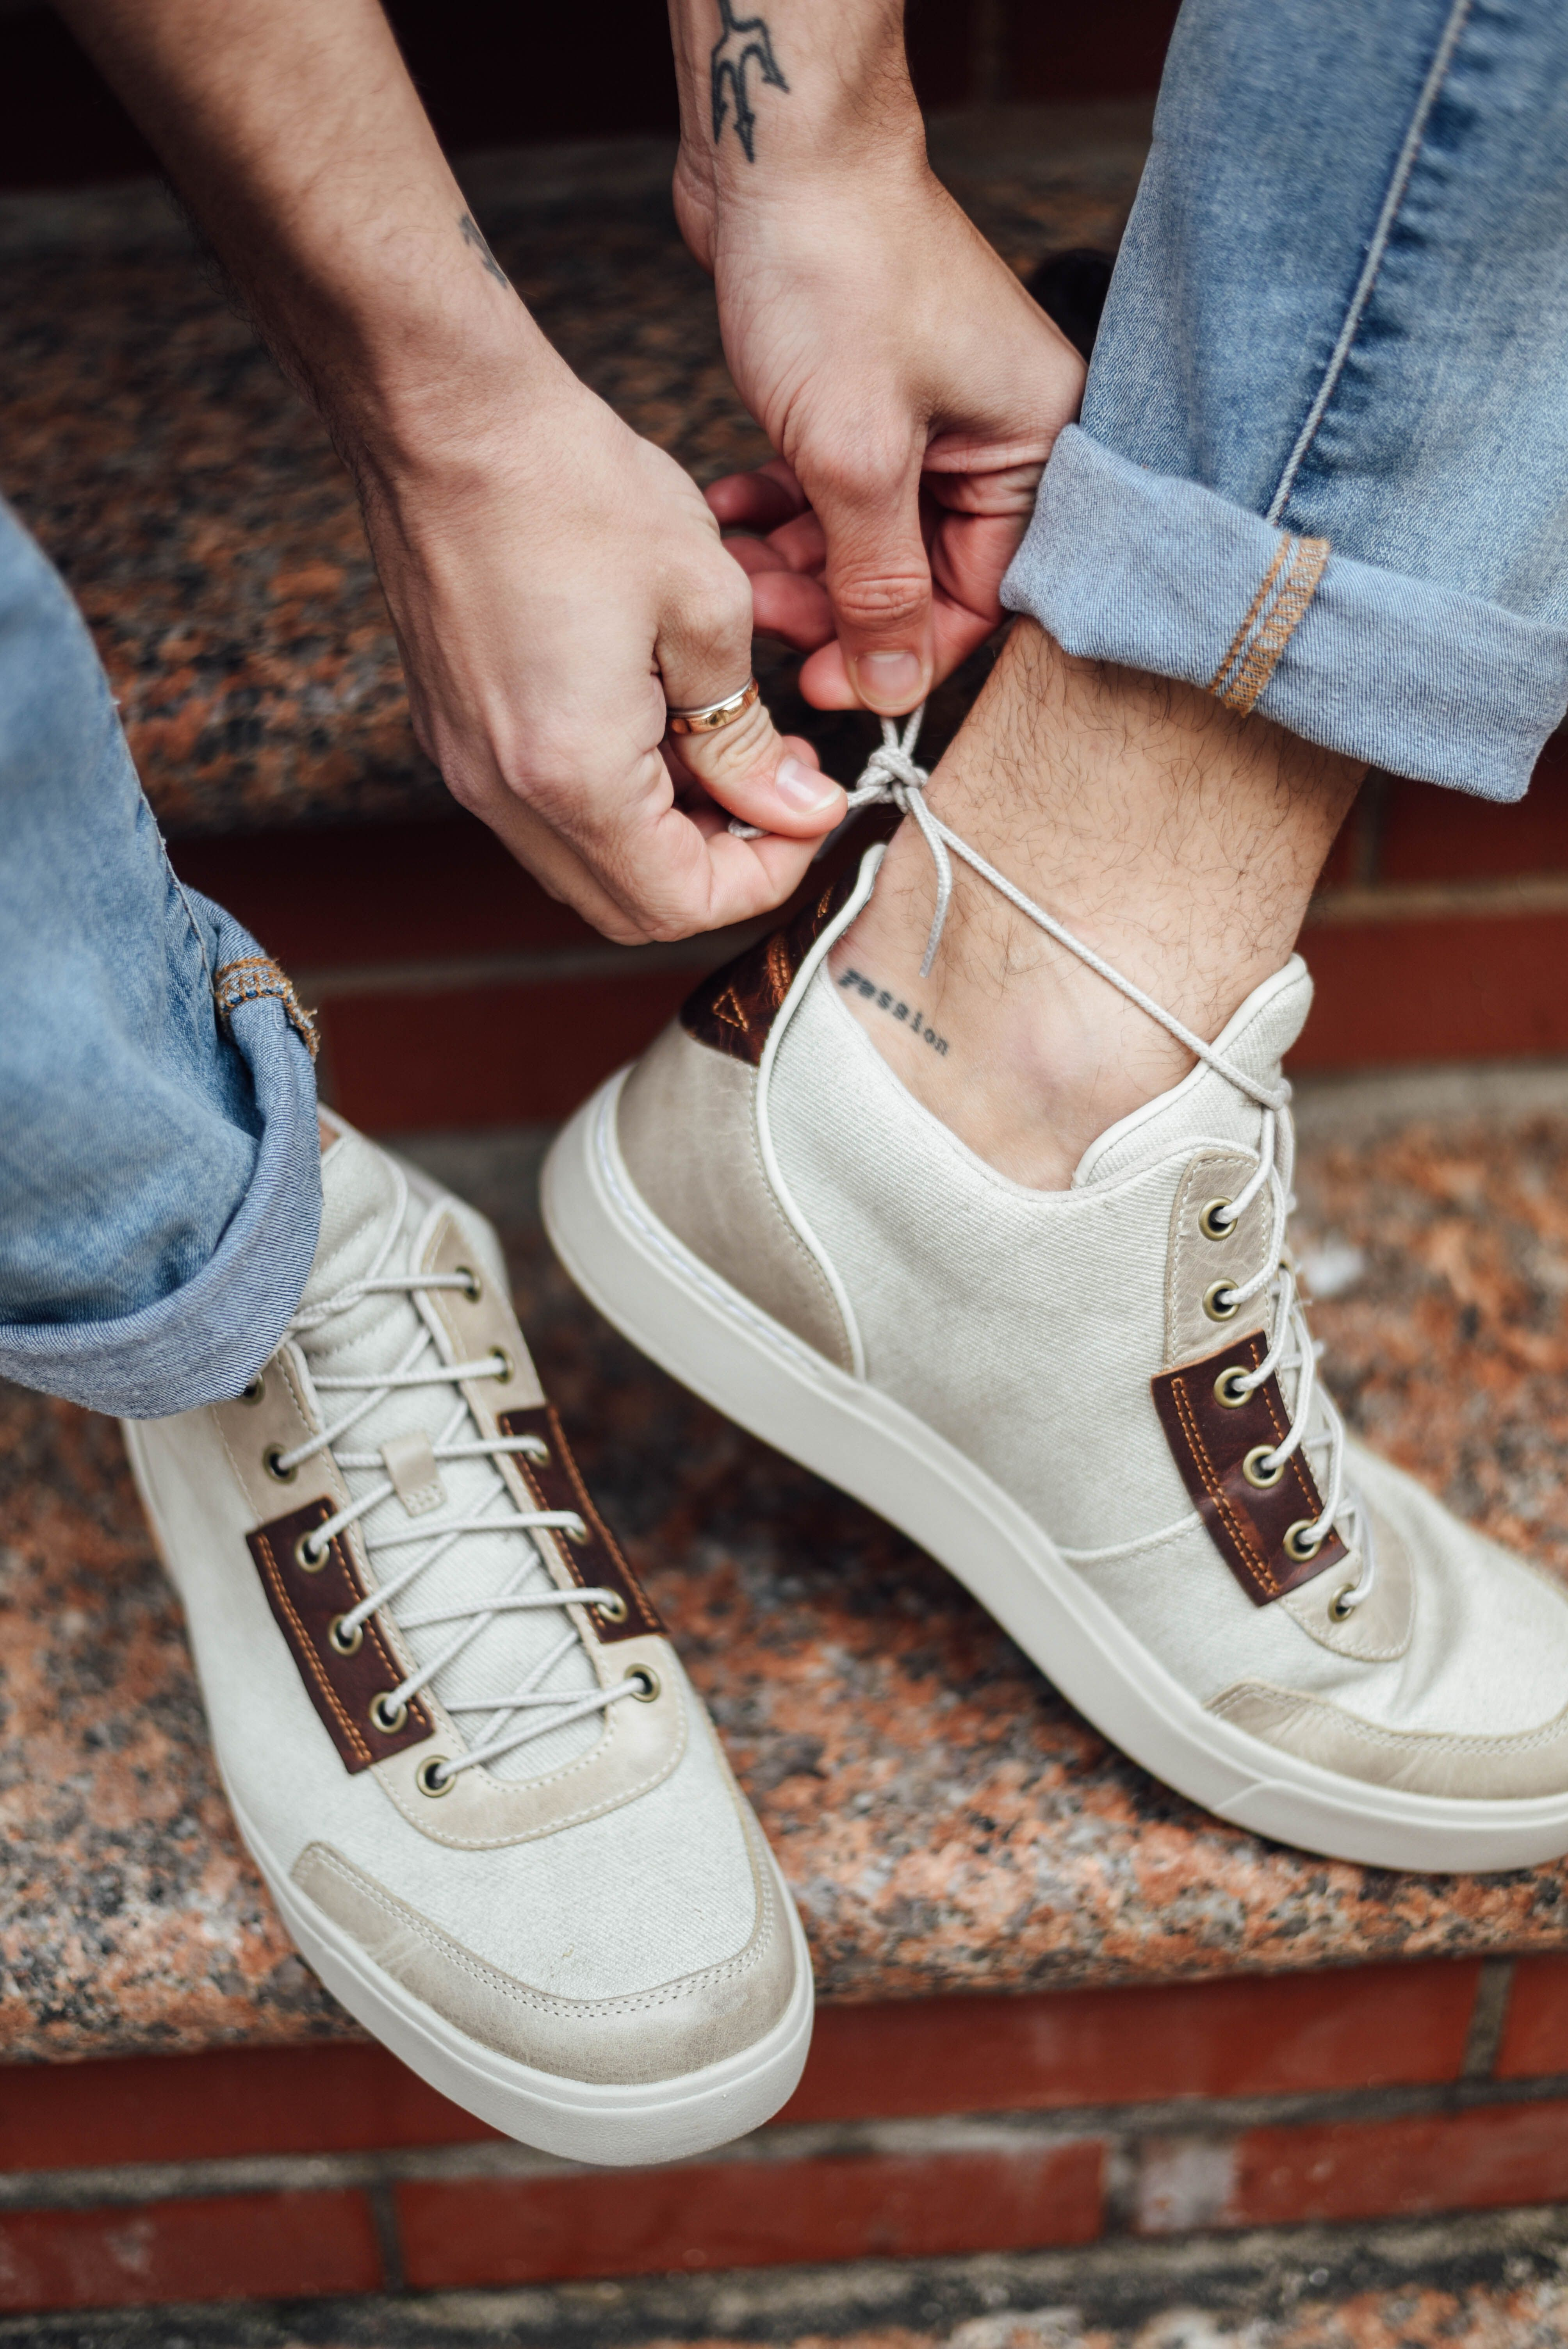 Justin Livingston shows us how he styles his high-top Chuckka's (no socks  required